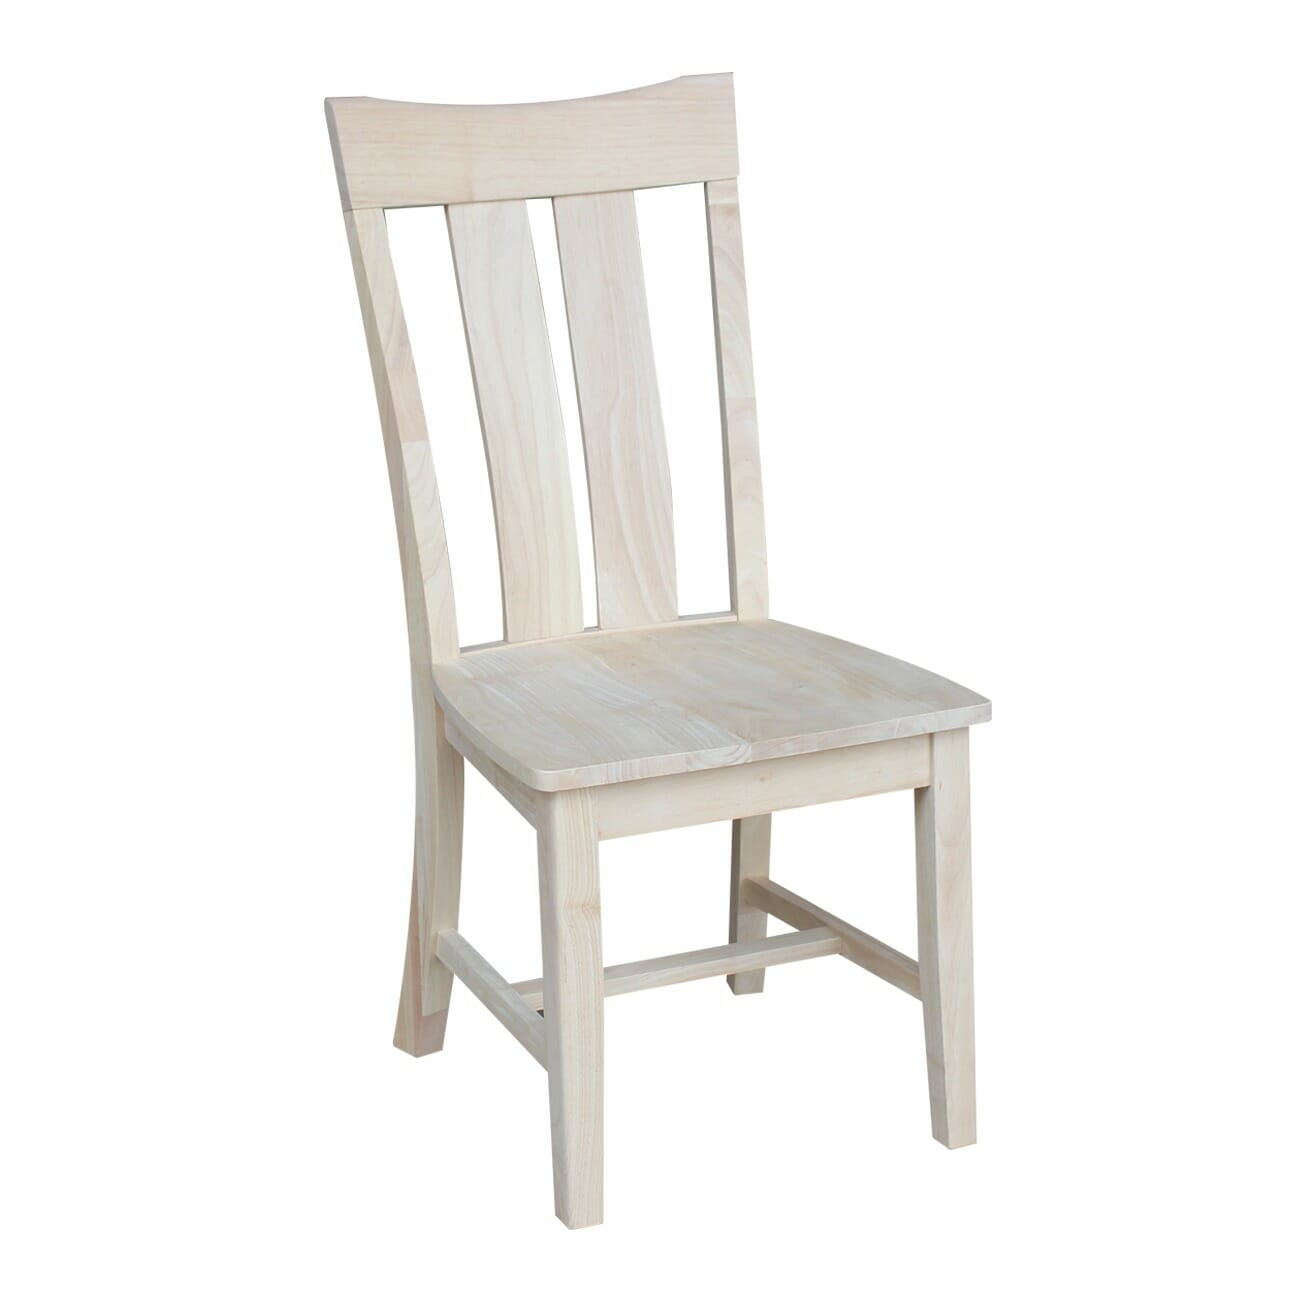 Unfinished Chair C 13 Ava Chair 2 Pack With Free Shipping Unfinished